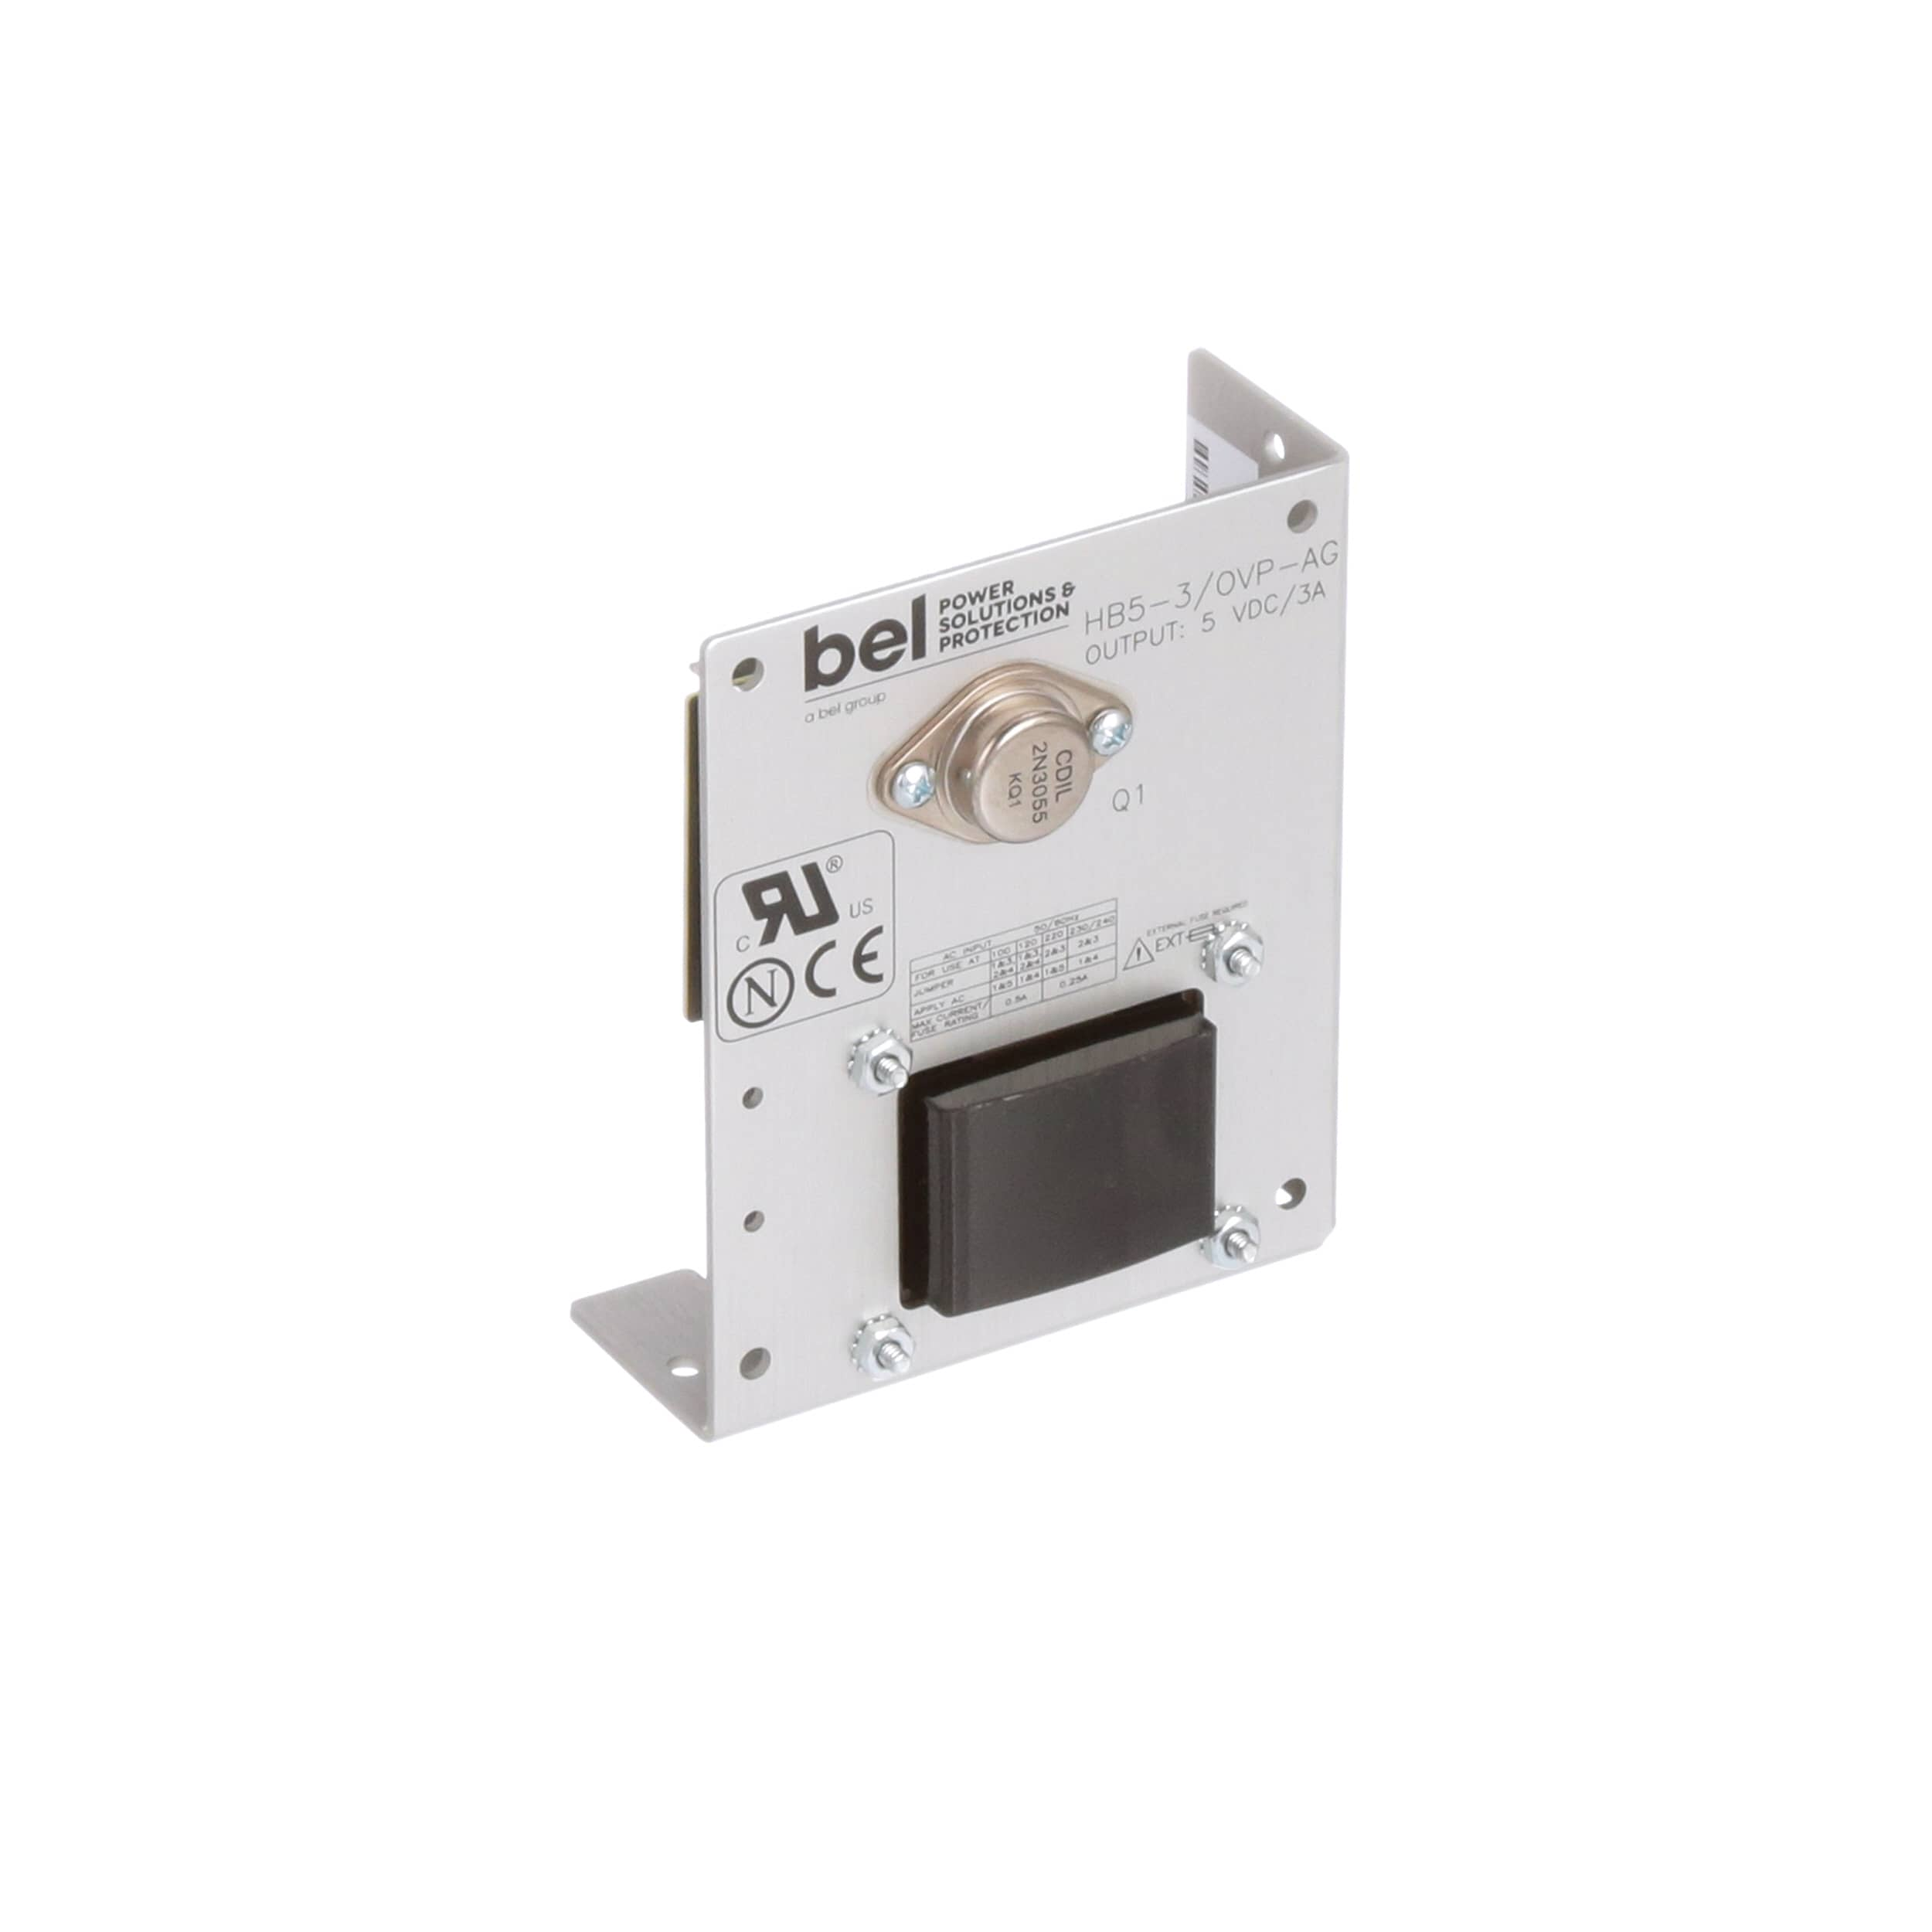 Bel Power Solutions Hb5 3 Ovp Ag Supply Ac Dc 5v 3a On Semiconductor 2n3055 Discrete Devices Datasheet 100 264v In Open Frame Panel Mount Linear Series Allied Electronics